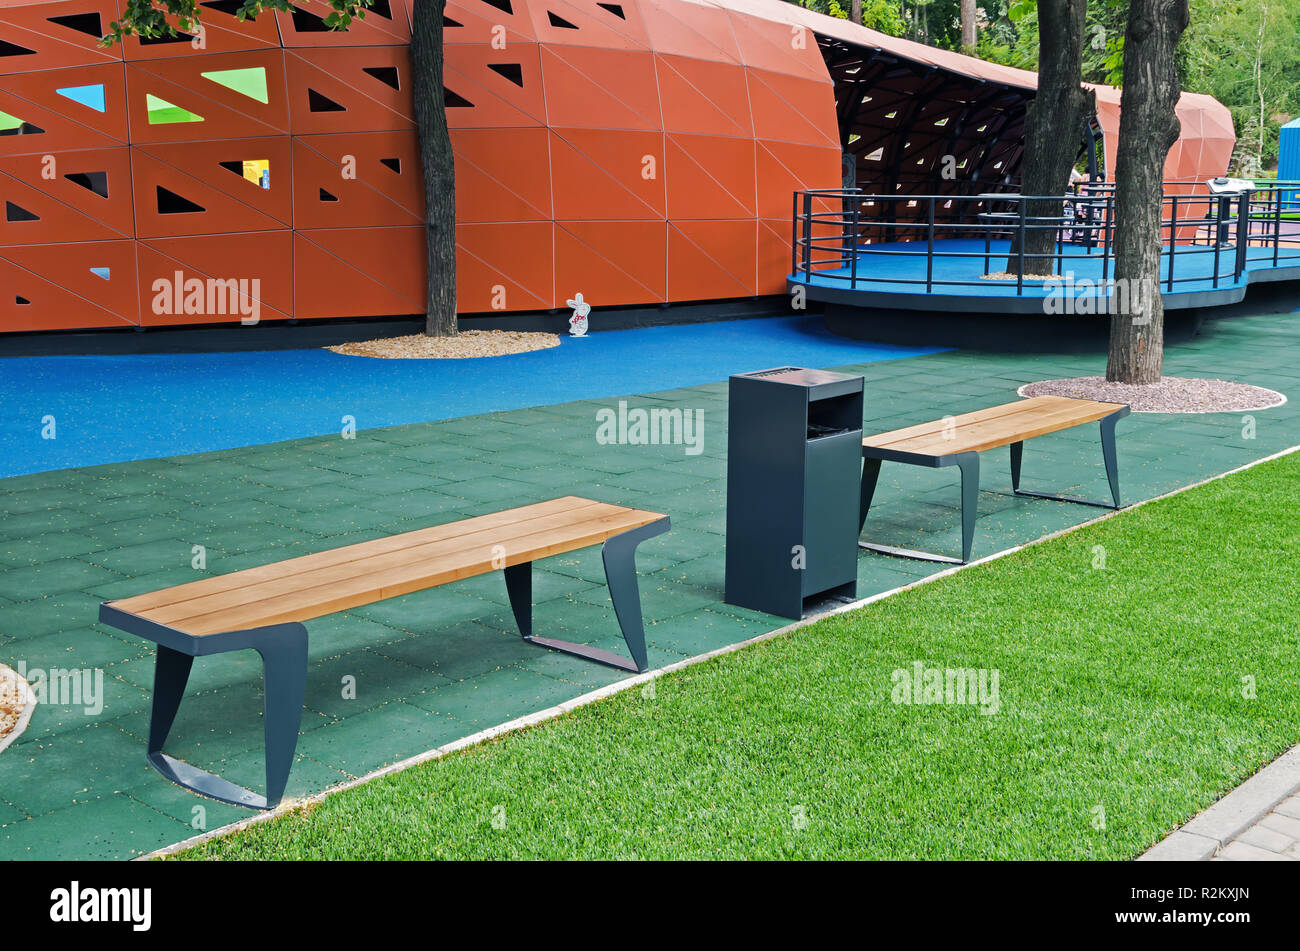 Wooden benches for rest in a childrens inclusive gaming park - Stock Image